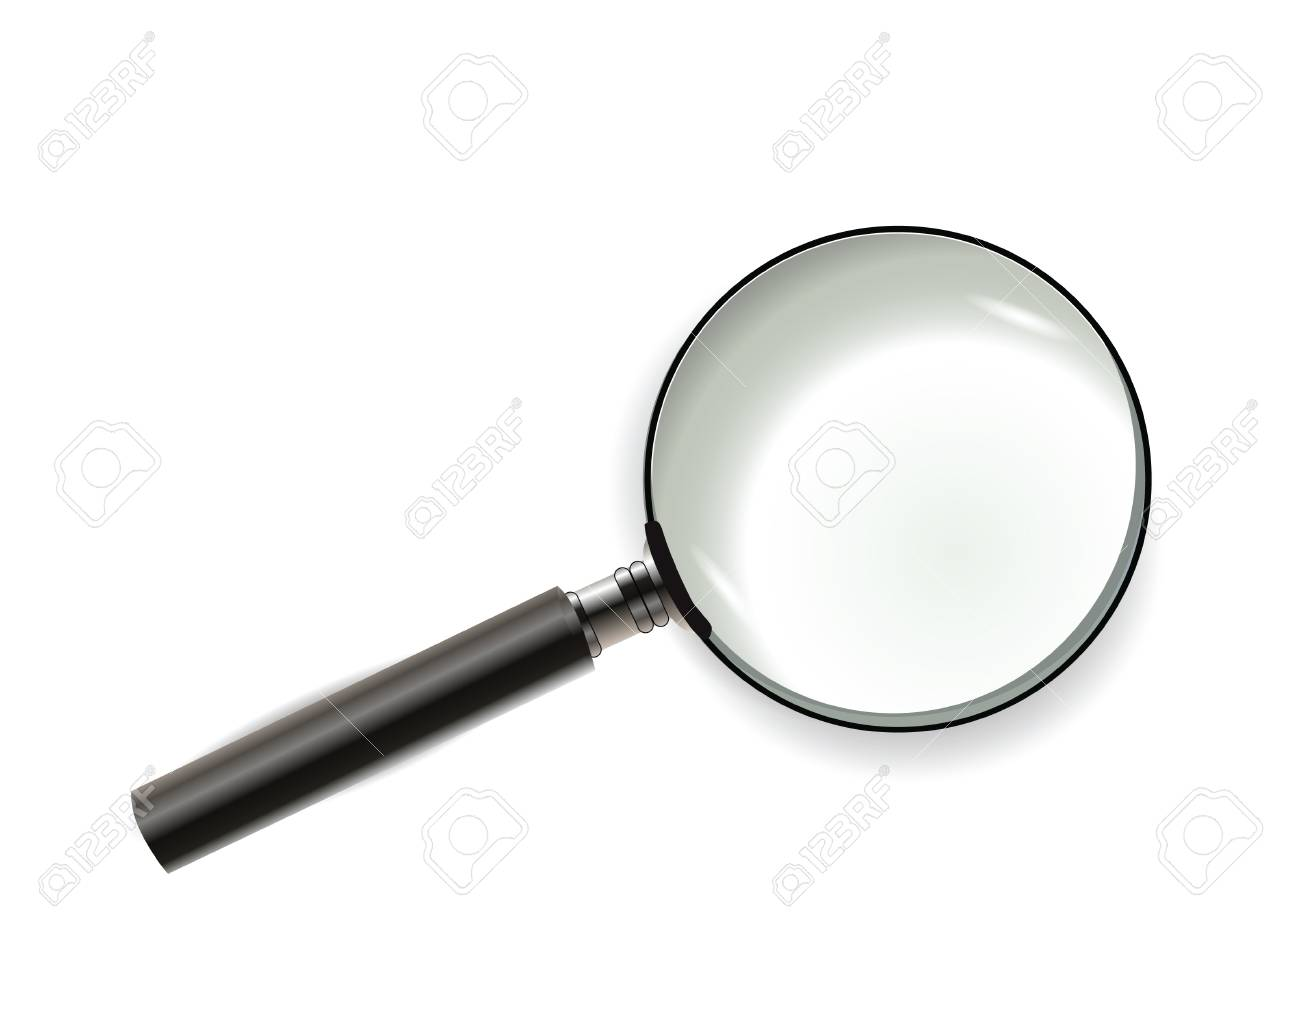 magnifying glass Stock Photo - 11647960